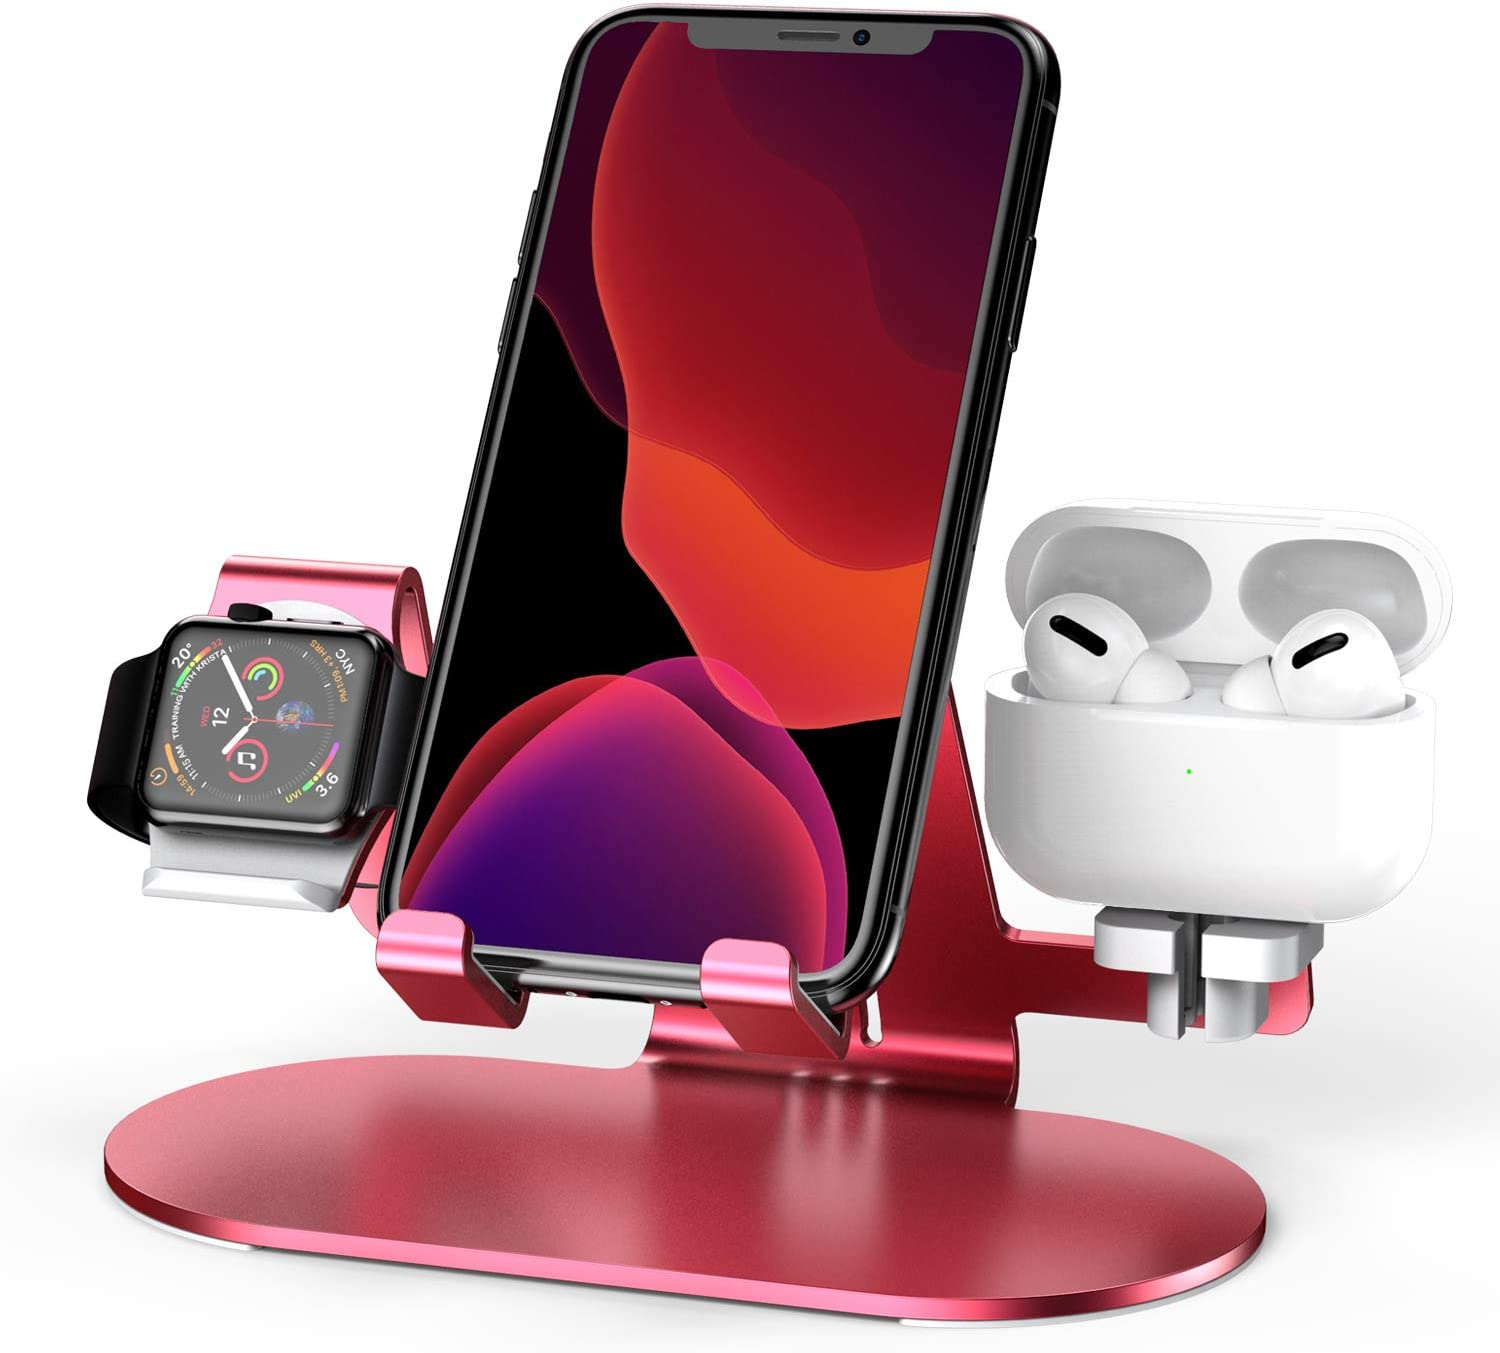 3 in 1 Aluminum Charging Station for Apple Watch Charger Stand Dock for iWatch Series 4/3/2/1,iPad,AirPods and iPhone Xs/X Max/XR/X/8/8Plus/7/7 Plus /6S /6S Plus(Red)